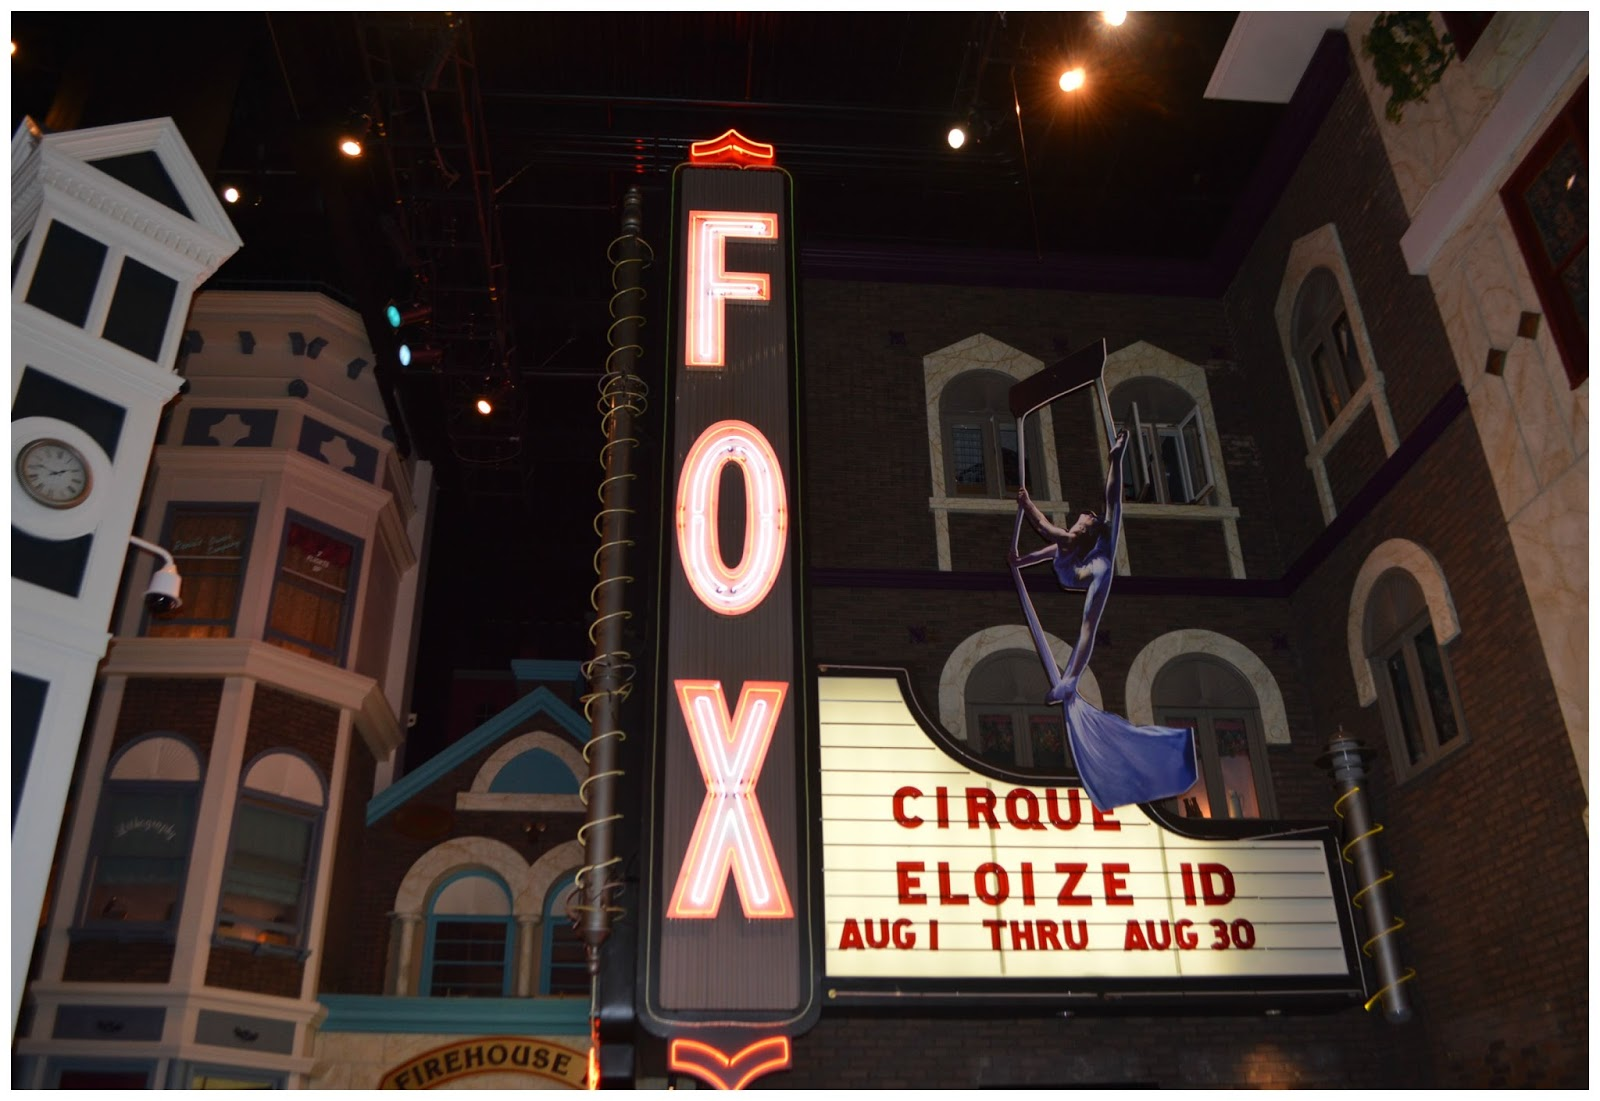 Casino foxwood show how to beat roulette machines in casinos